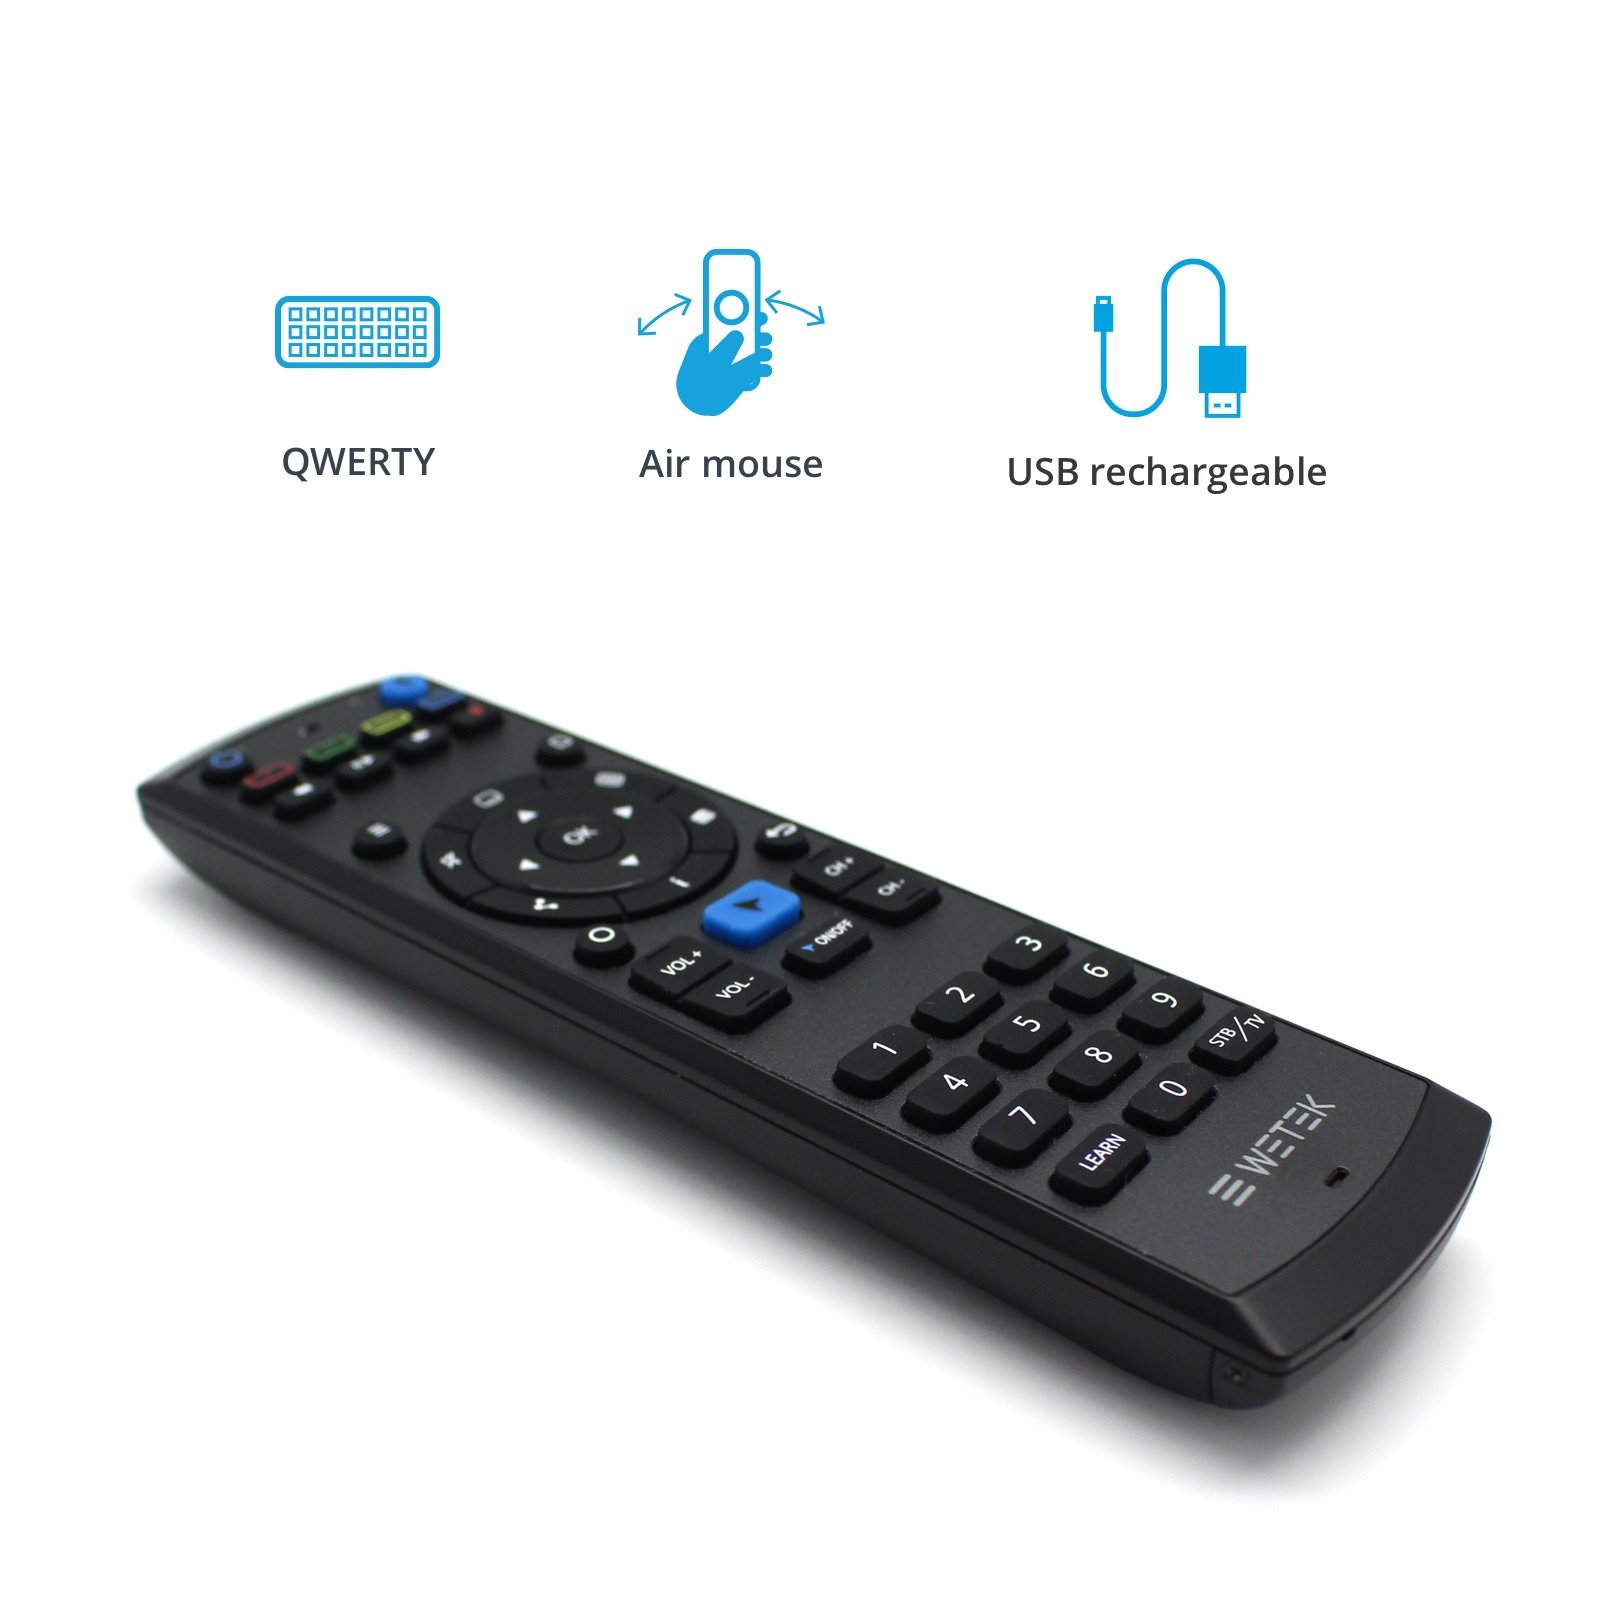 WeTek Pro Remote - Universal Remote Infra Red with QWERTY Keyboard and Air Mouse 3.5mm Audio Jack USB Rechargeable